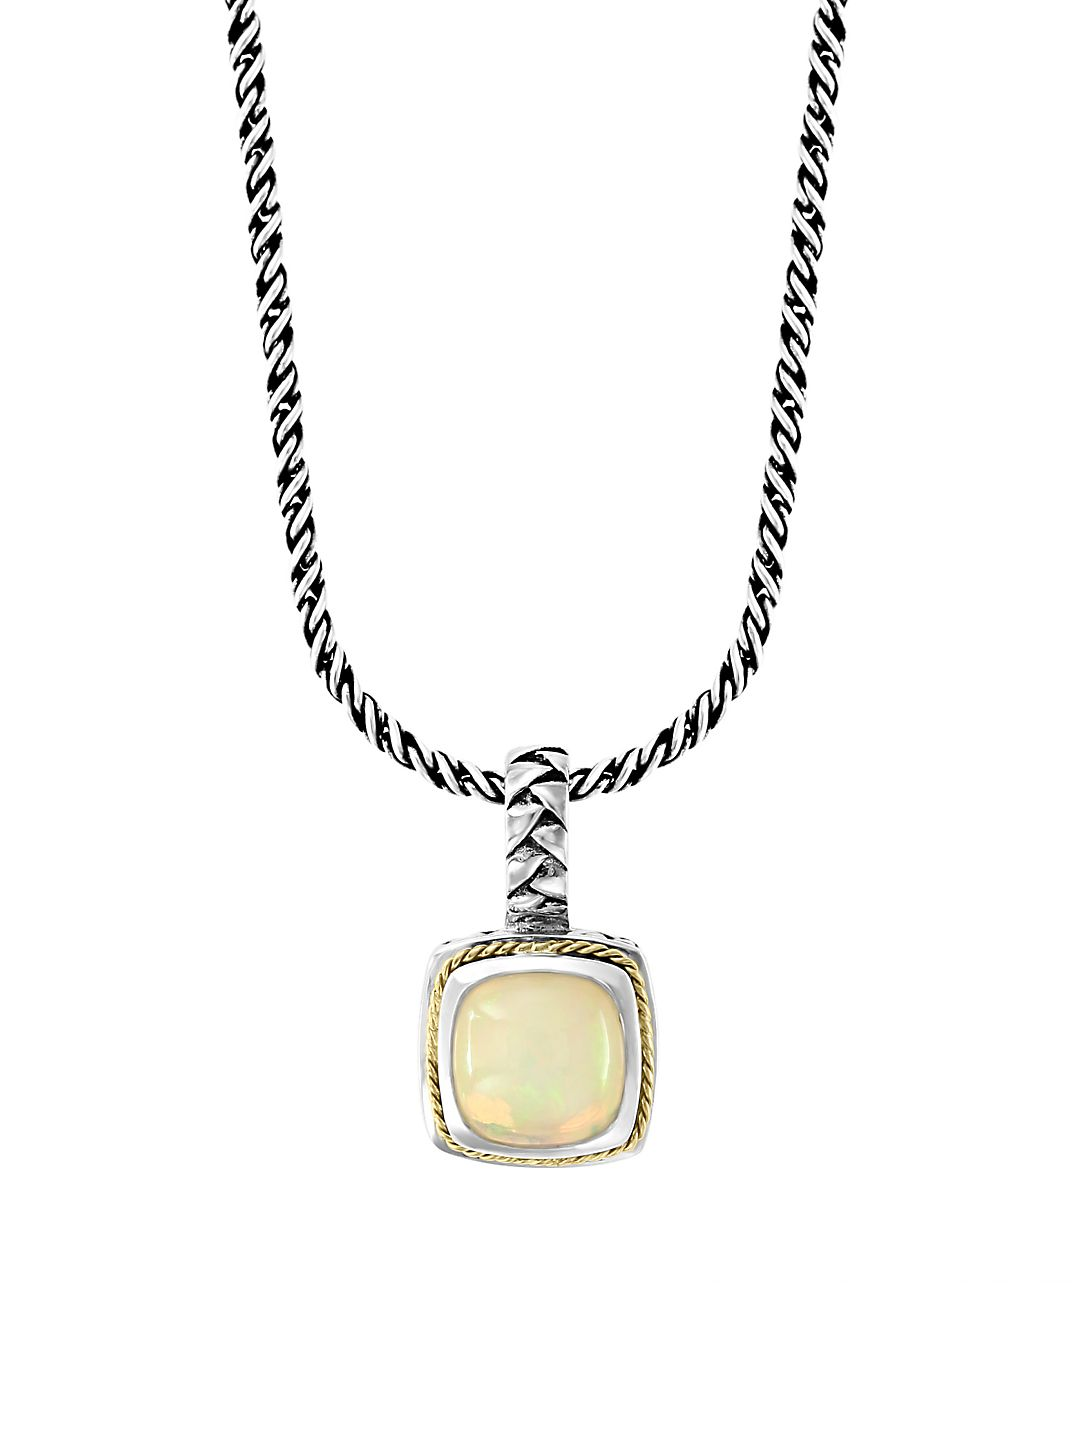 Sterling Silver, 18K Yellow Gold & Opal Pendant Necklace